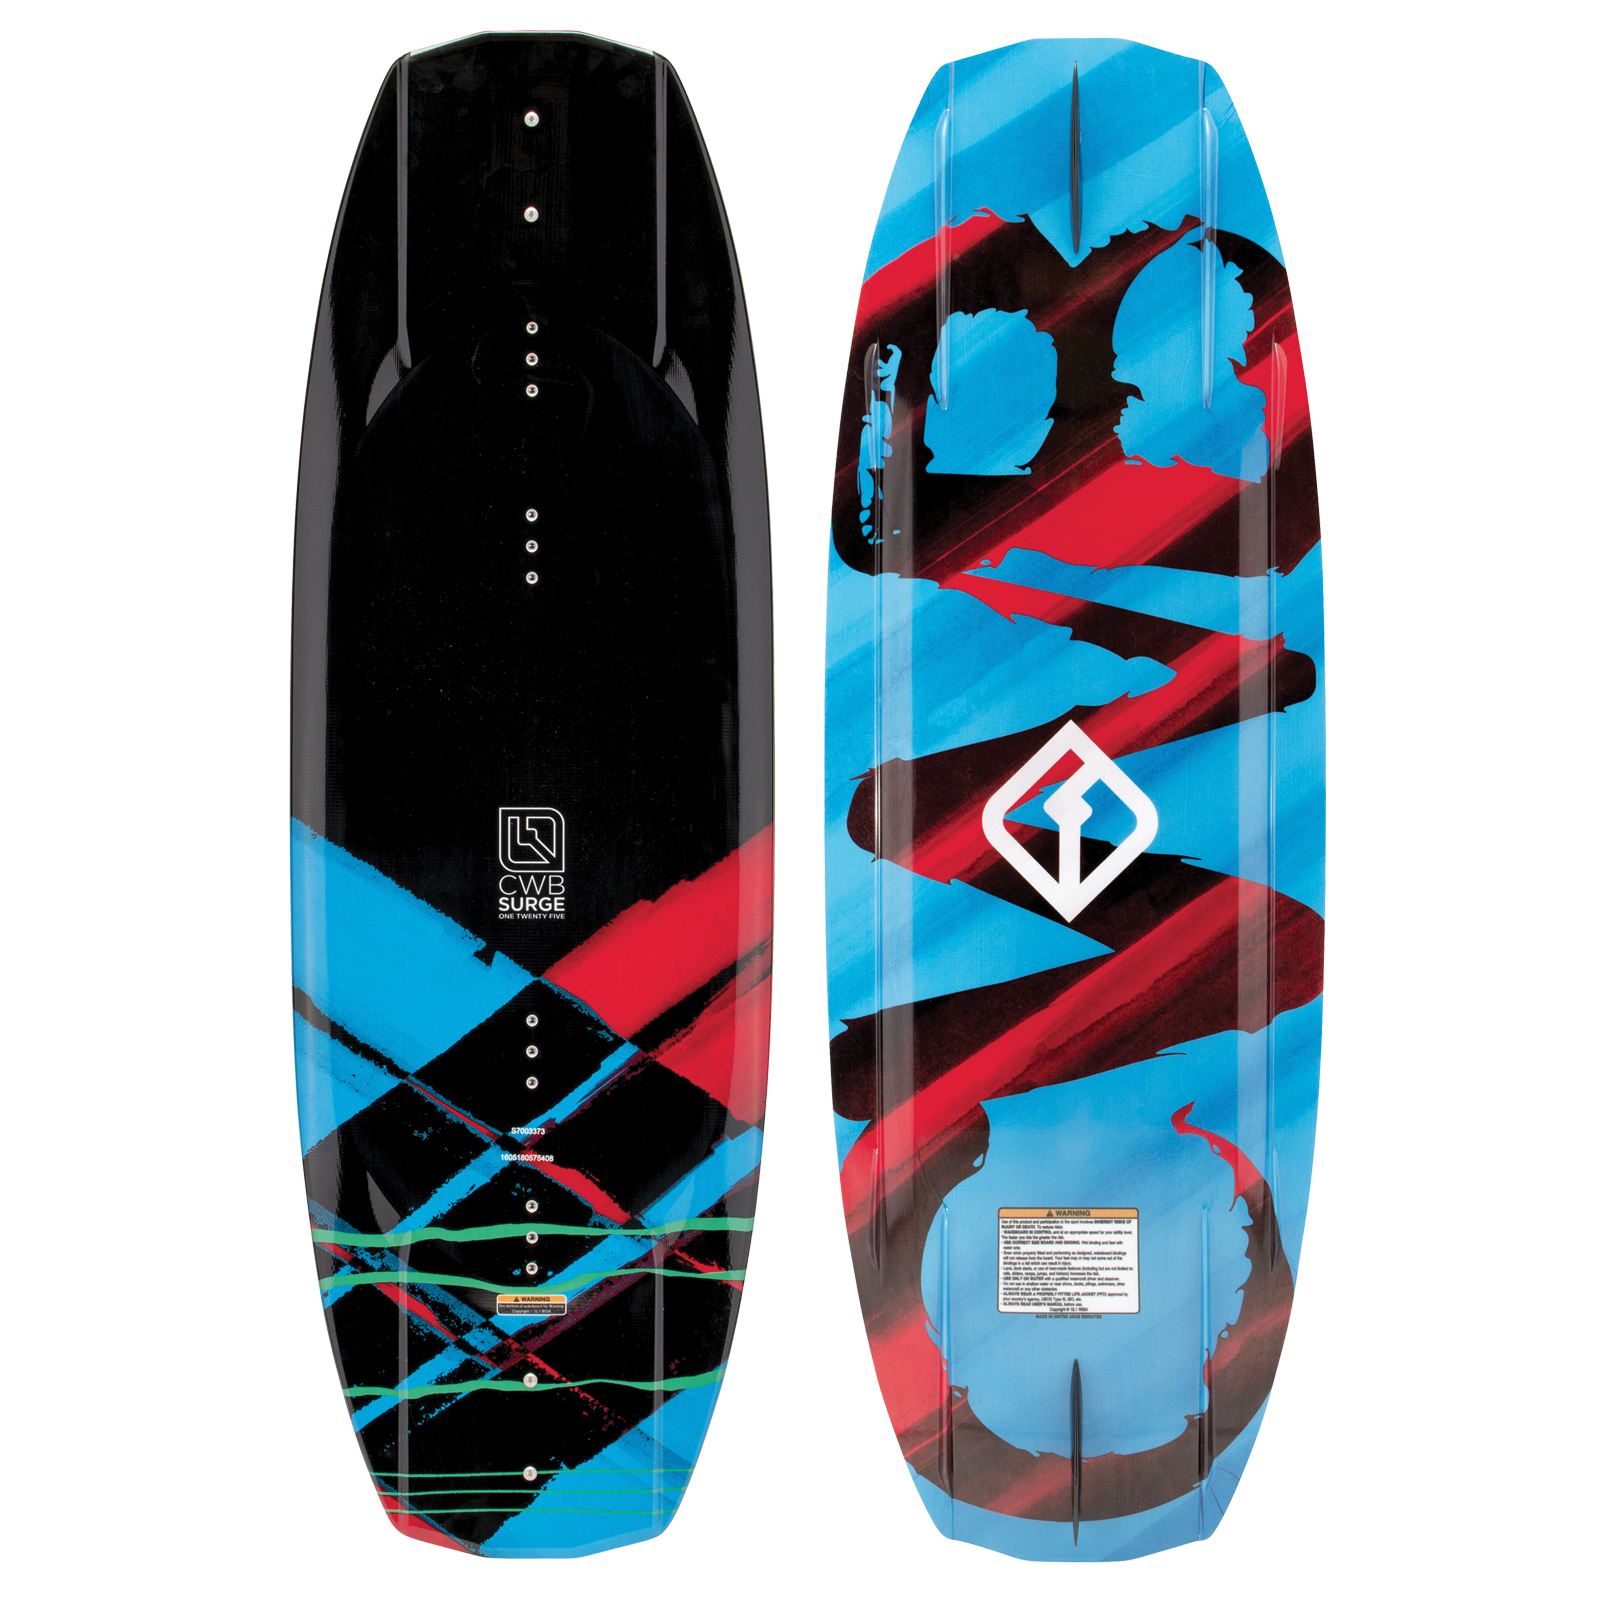 PLACA WAKEBOARD SURGE 125 JR. WAKEBOARD CWB 2017